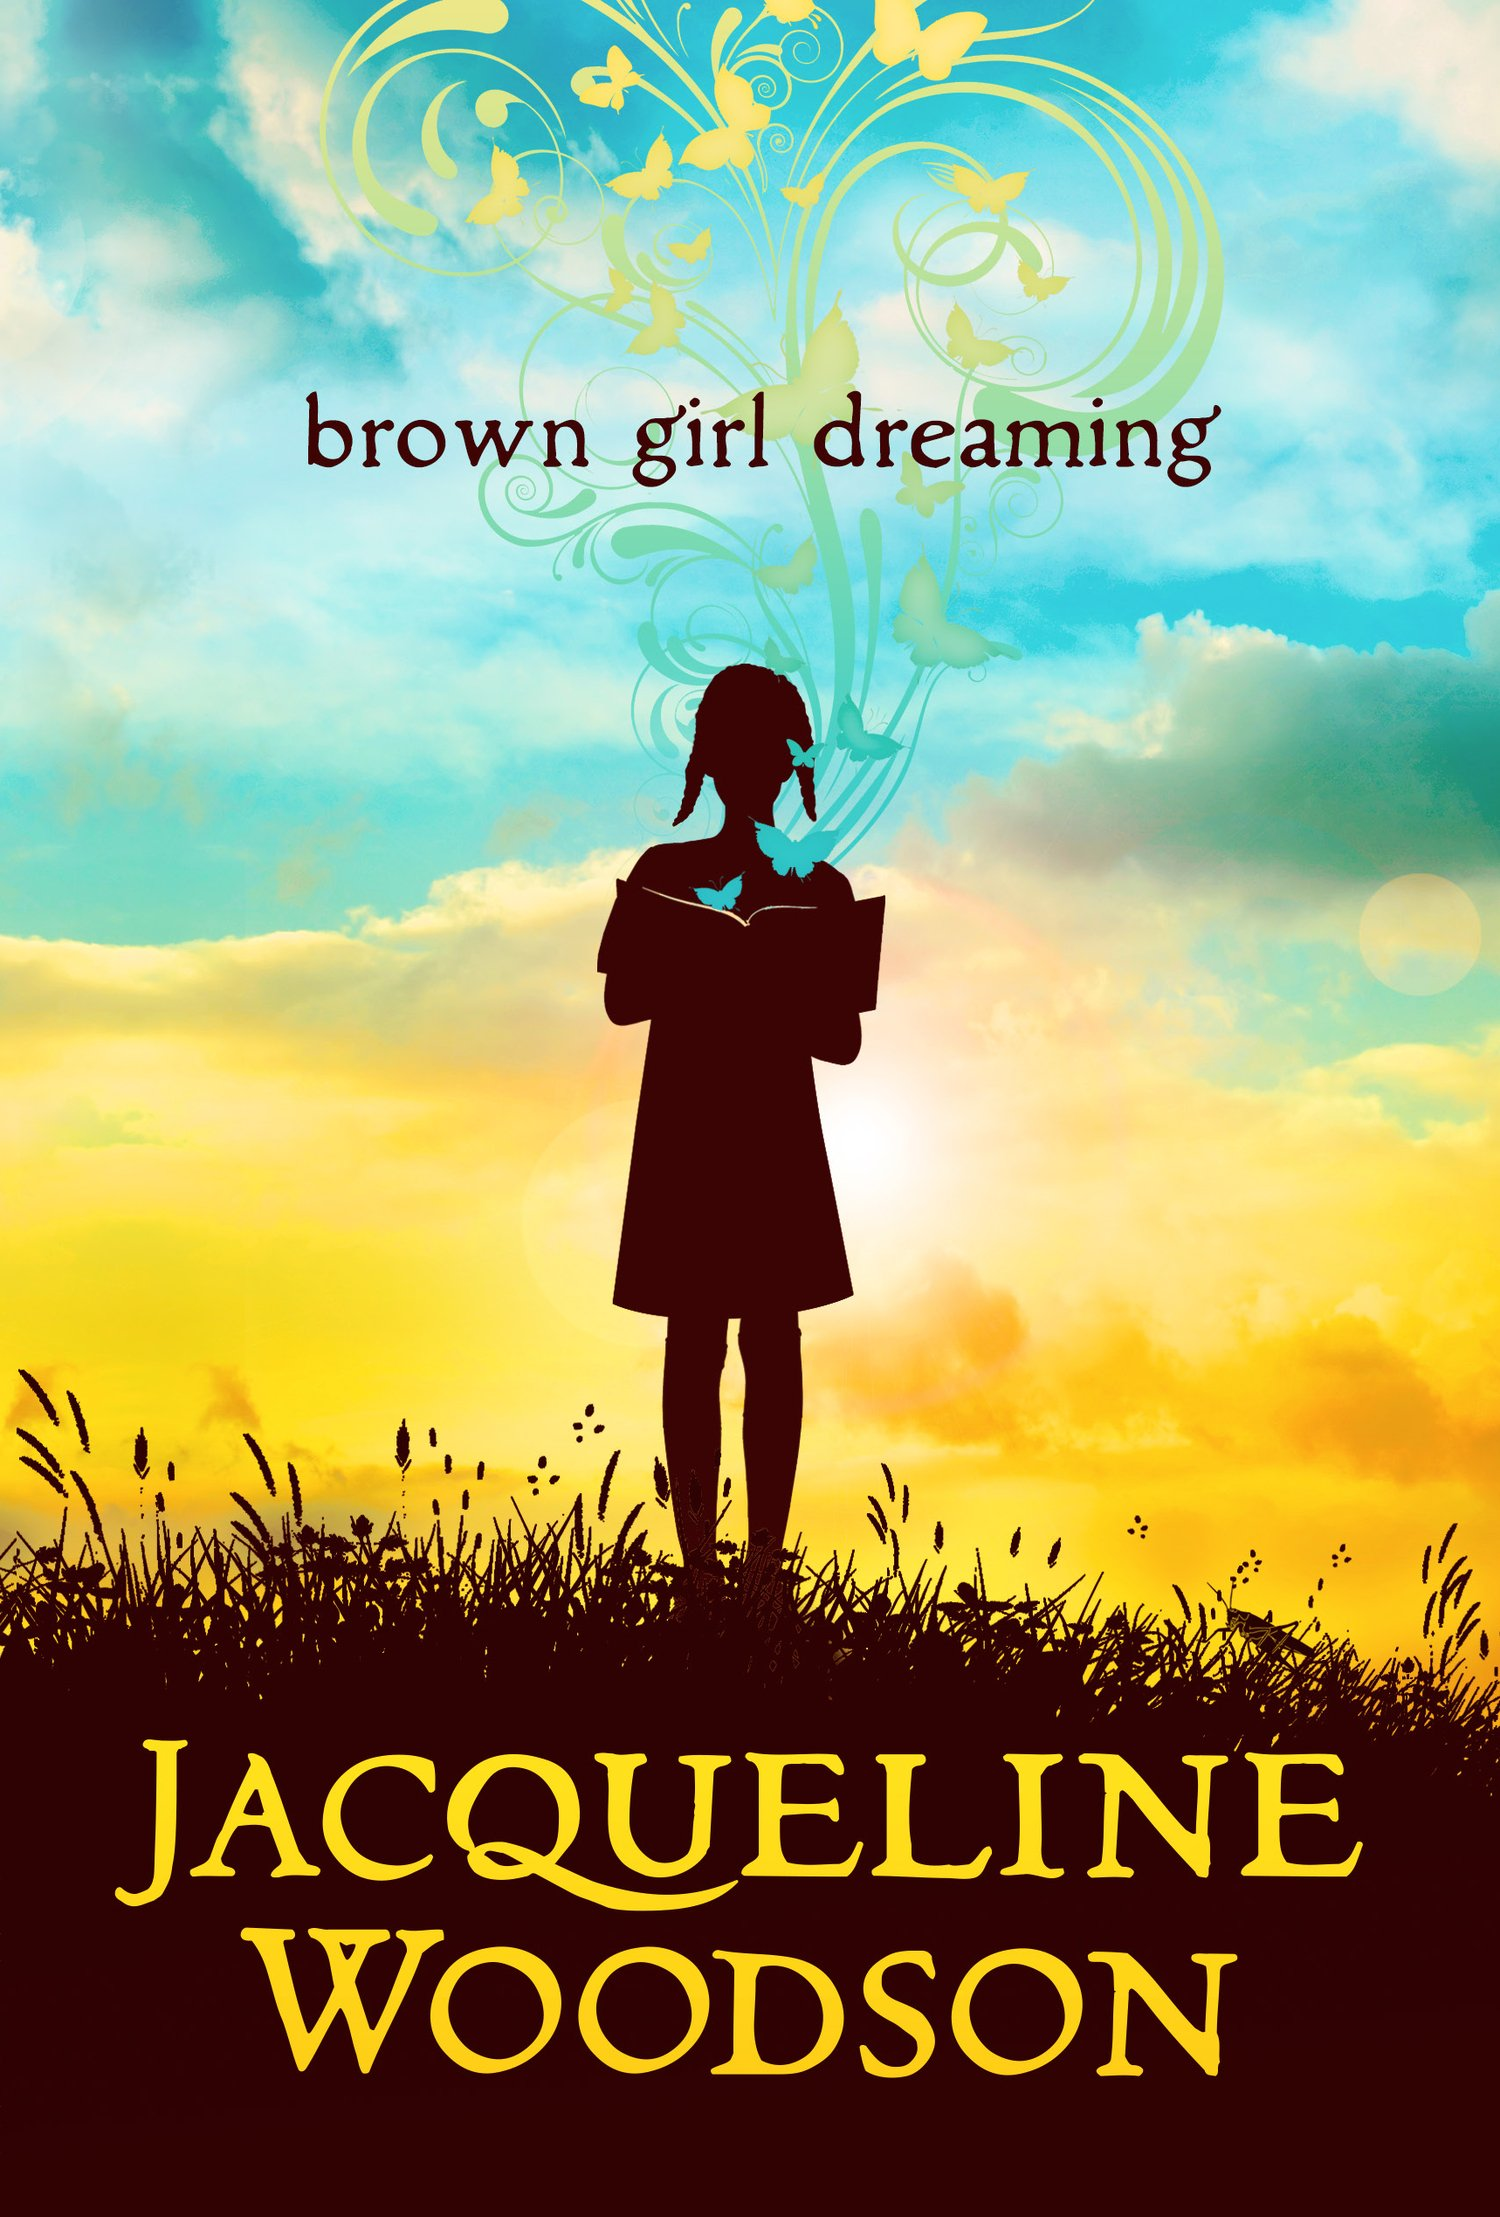 brown girl dreaming by Jacqueline Woodson | BookDragon